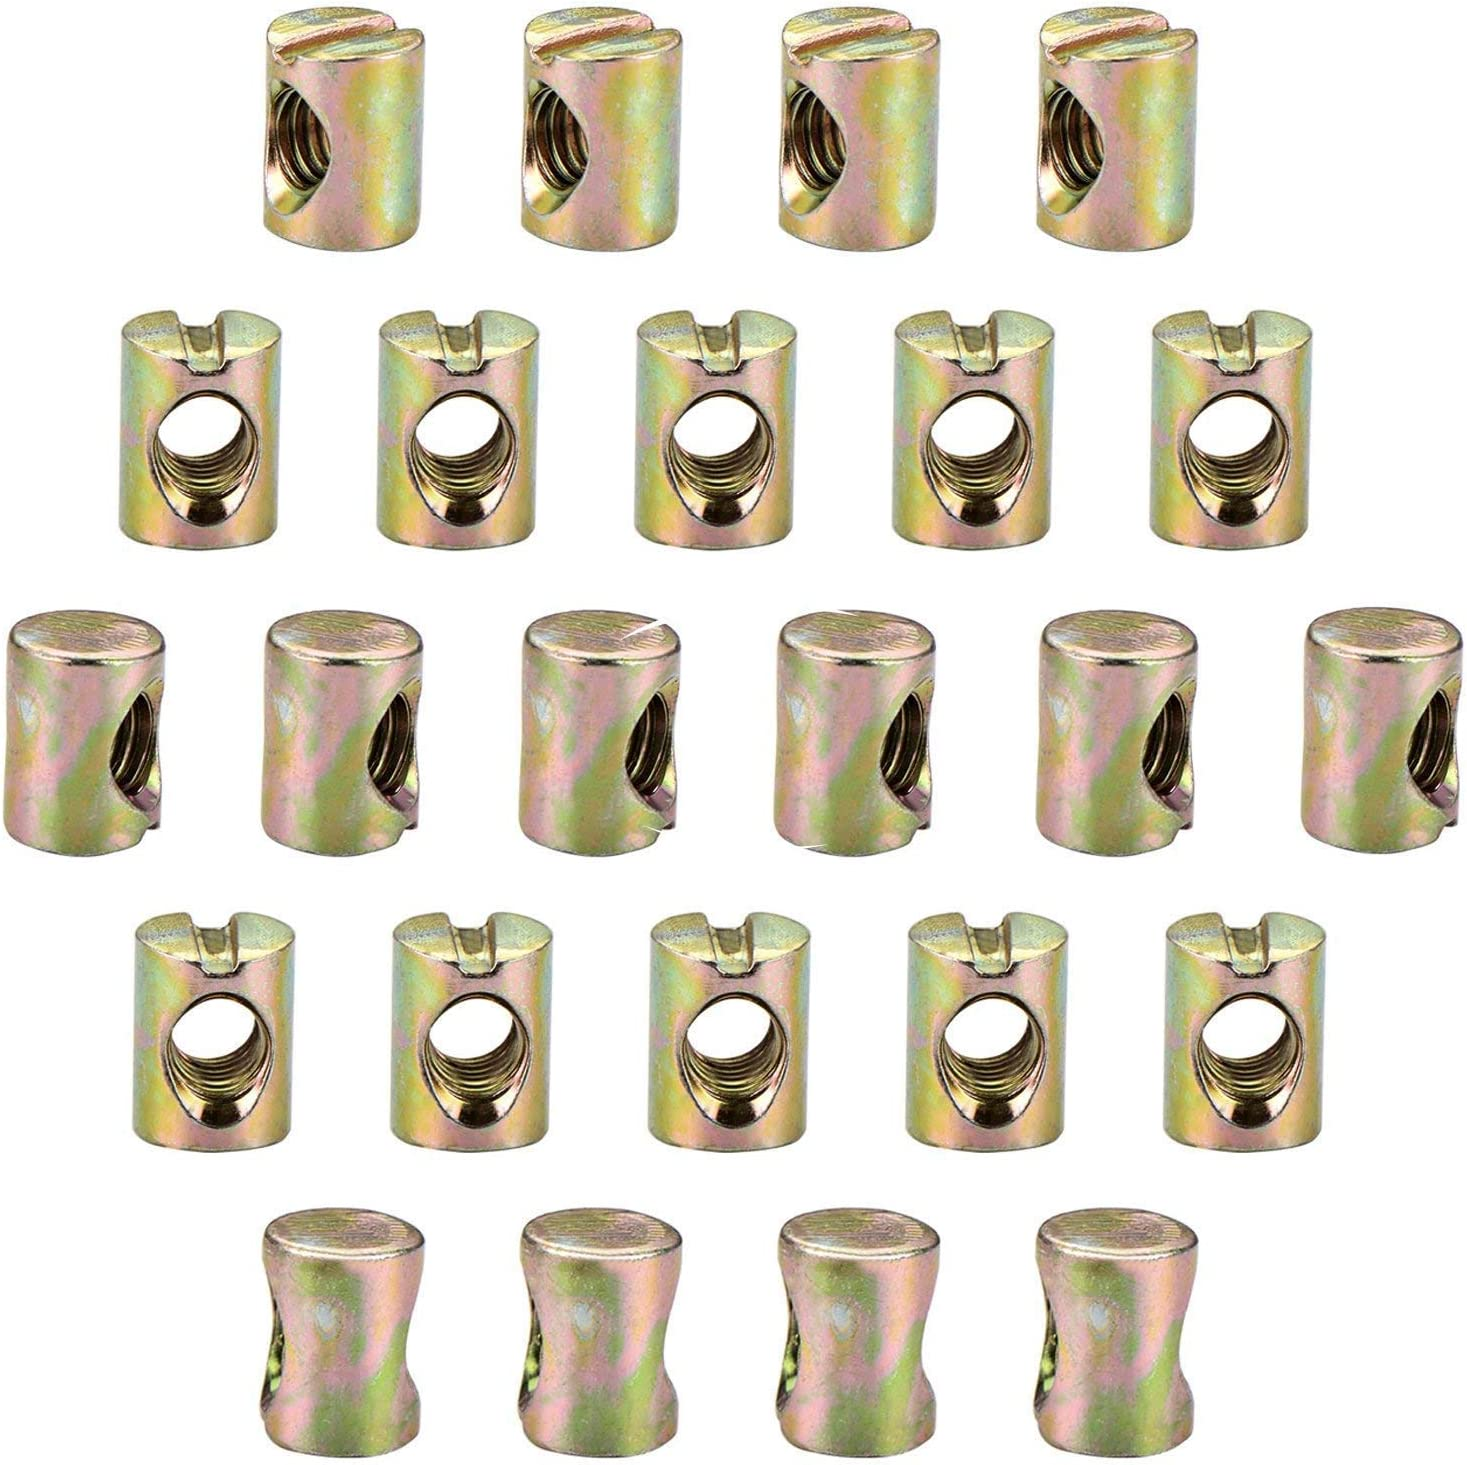 M6 x 15mm Hilitchi 20-Pcs M6 Pozidriv Slotted Barrel Nuts Cross Dowels Slotted Nuts for Furniture Beds Crib Chairs